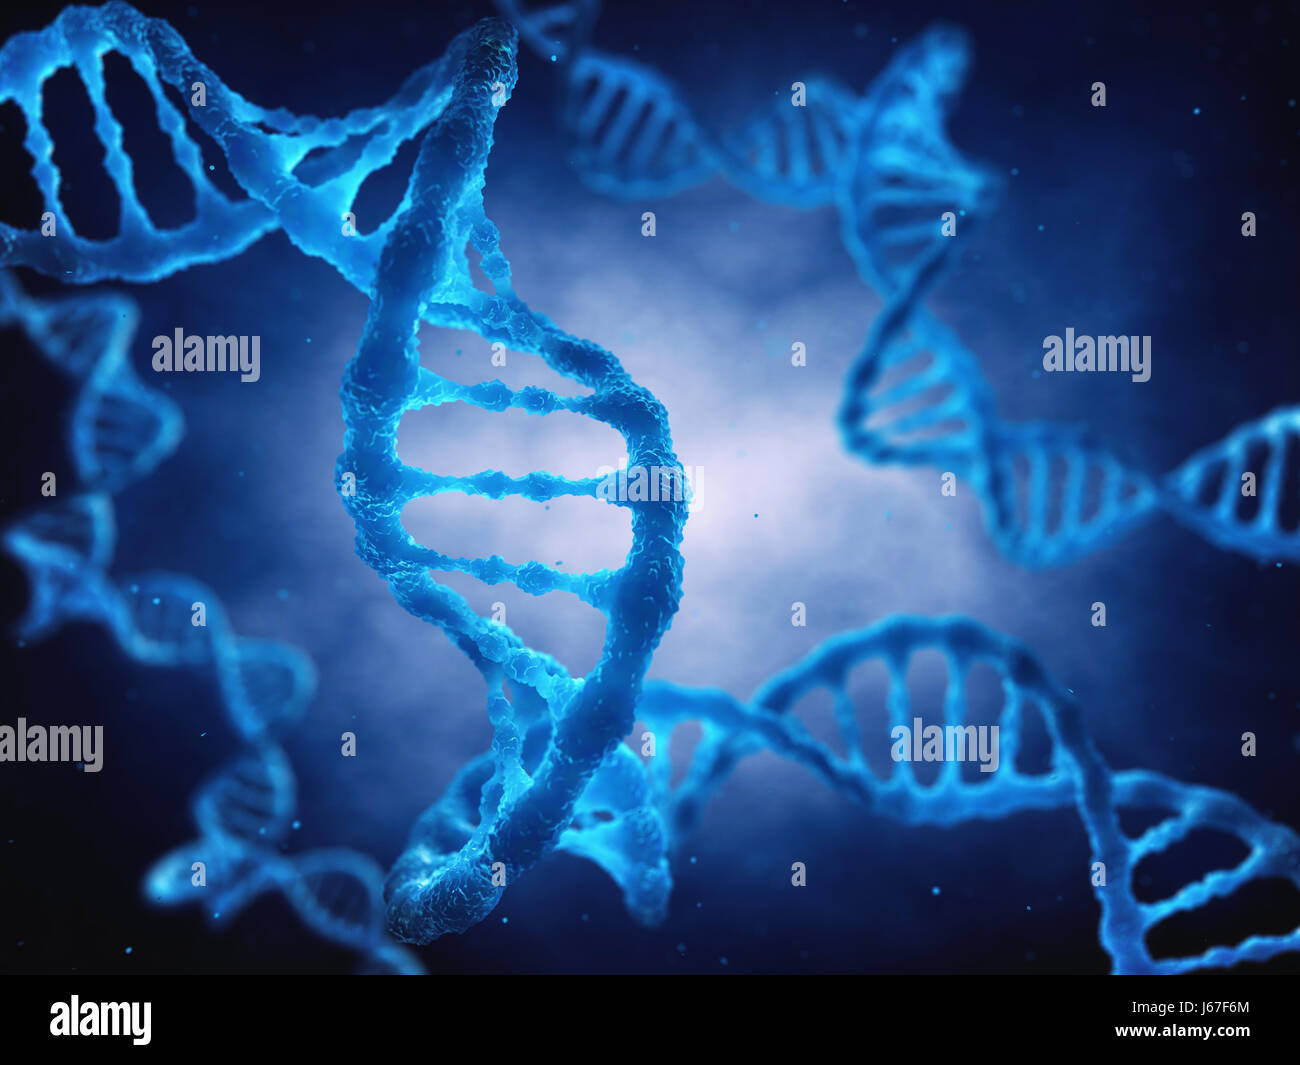 The dna double helix molecule is the genetic blueprint for life the dna double helix molecule is the genetic blueprint for life molecular genetics malvernweather